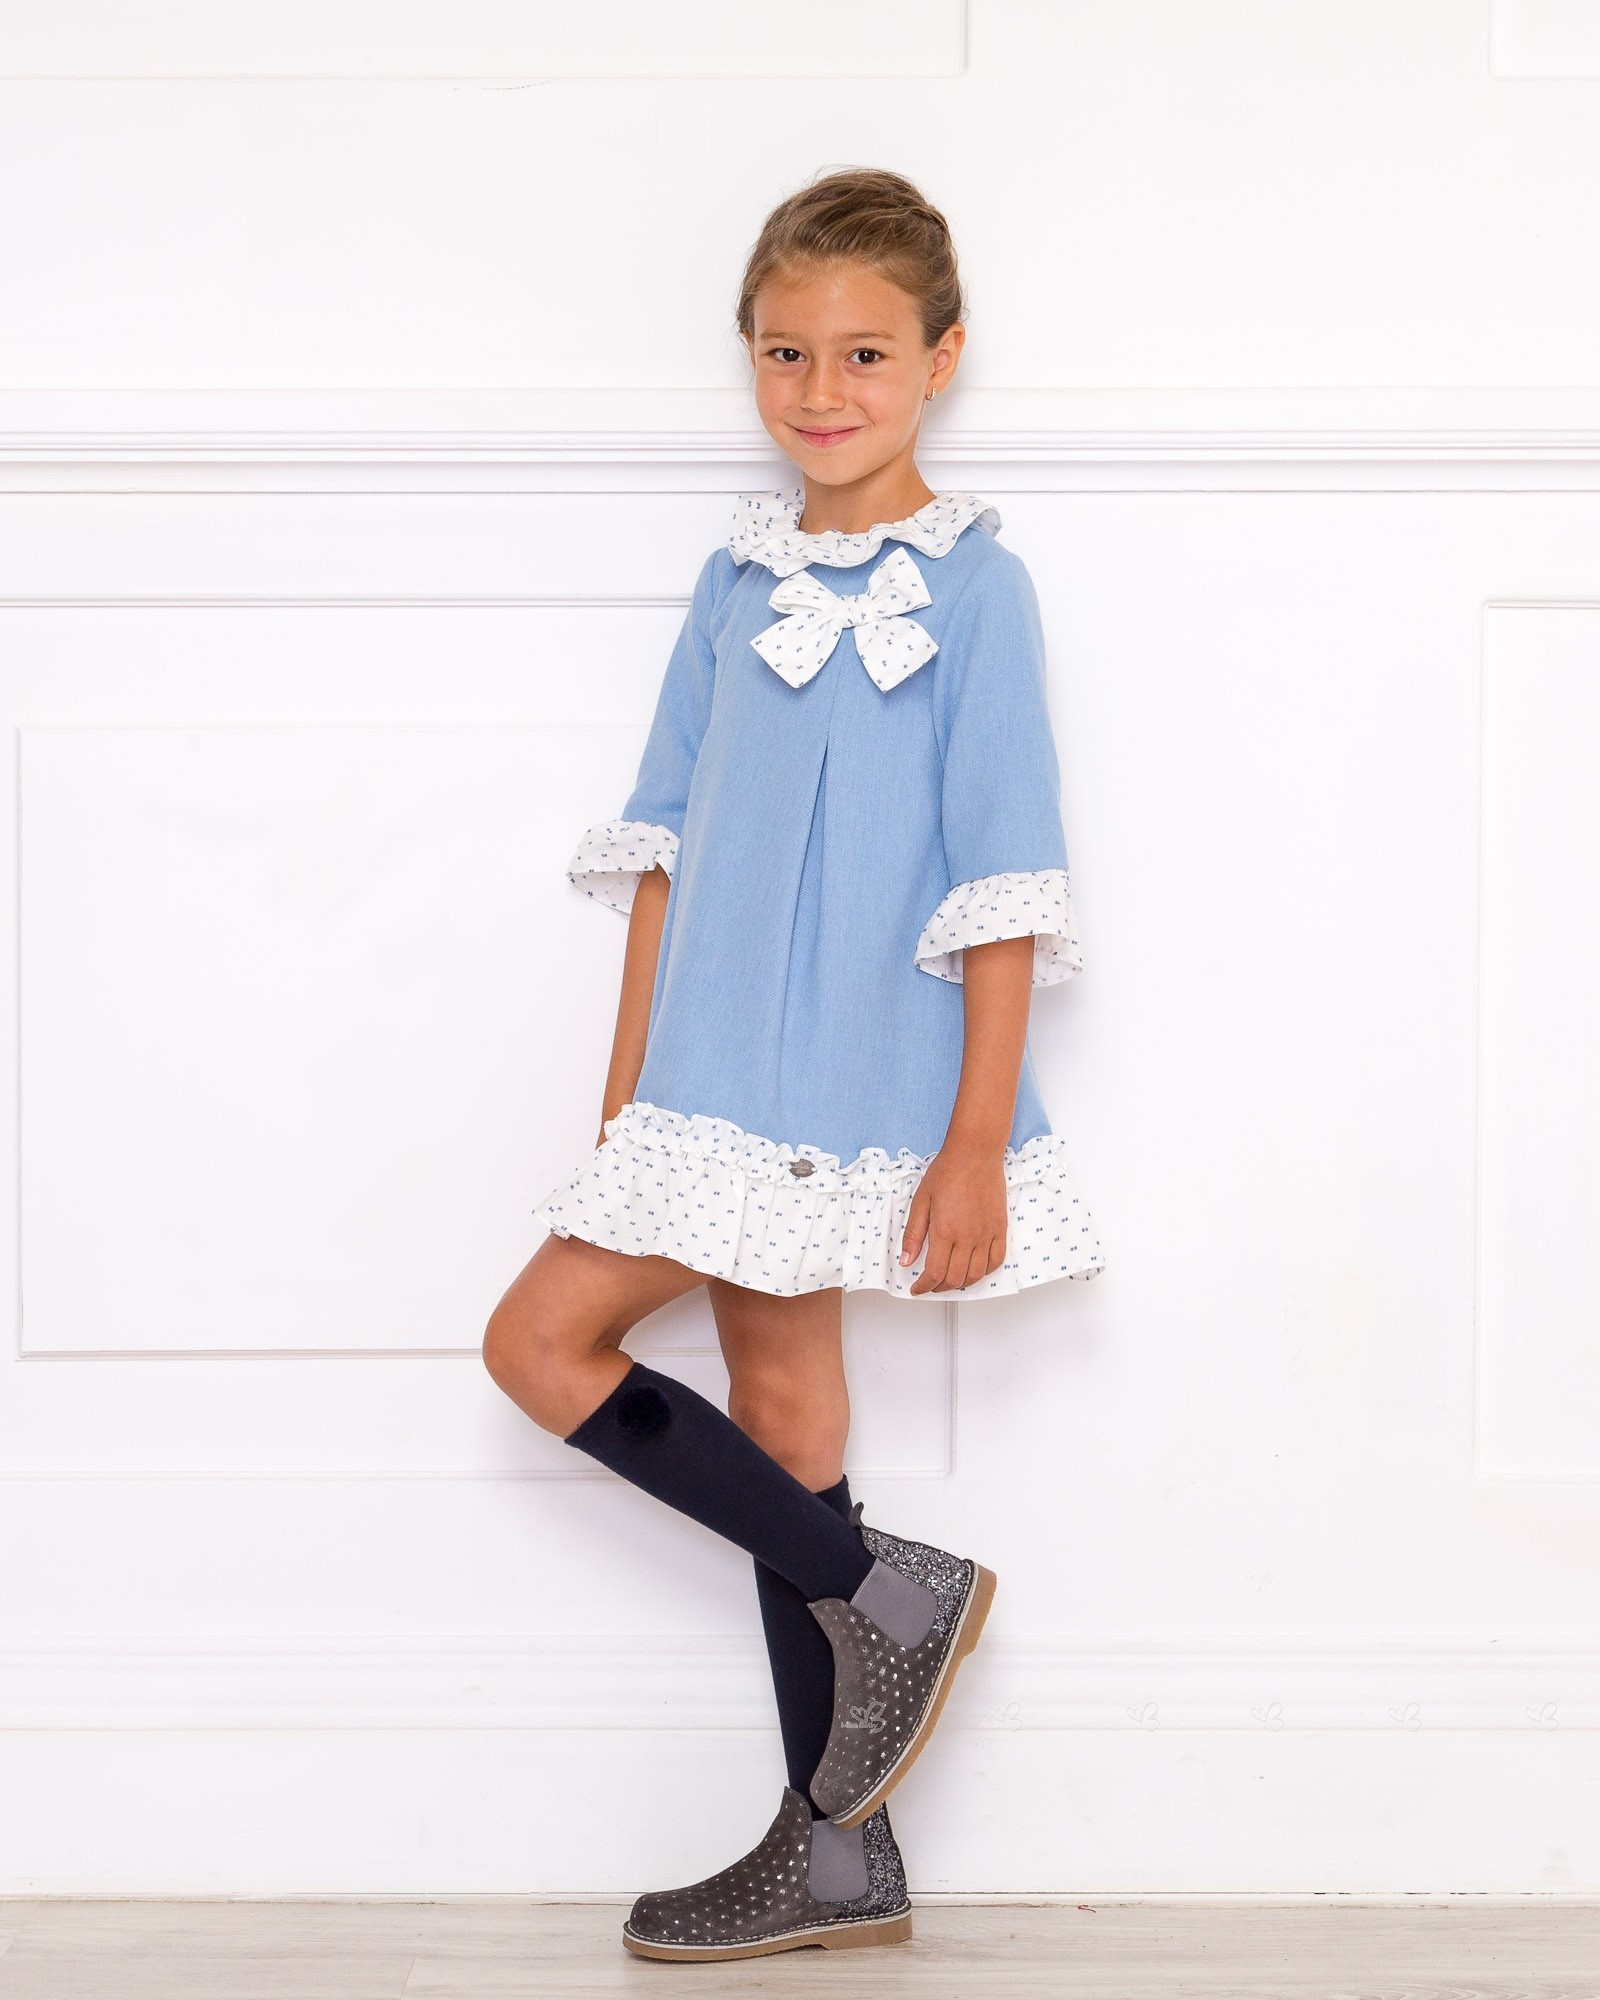 Girls Gray Suede u0026 Glitter Boots Outfit | Missbaby